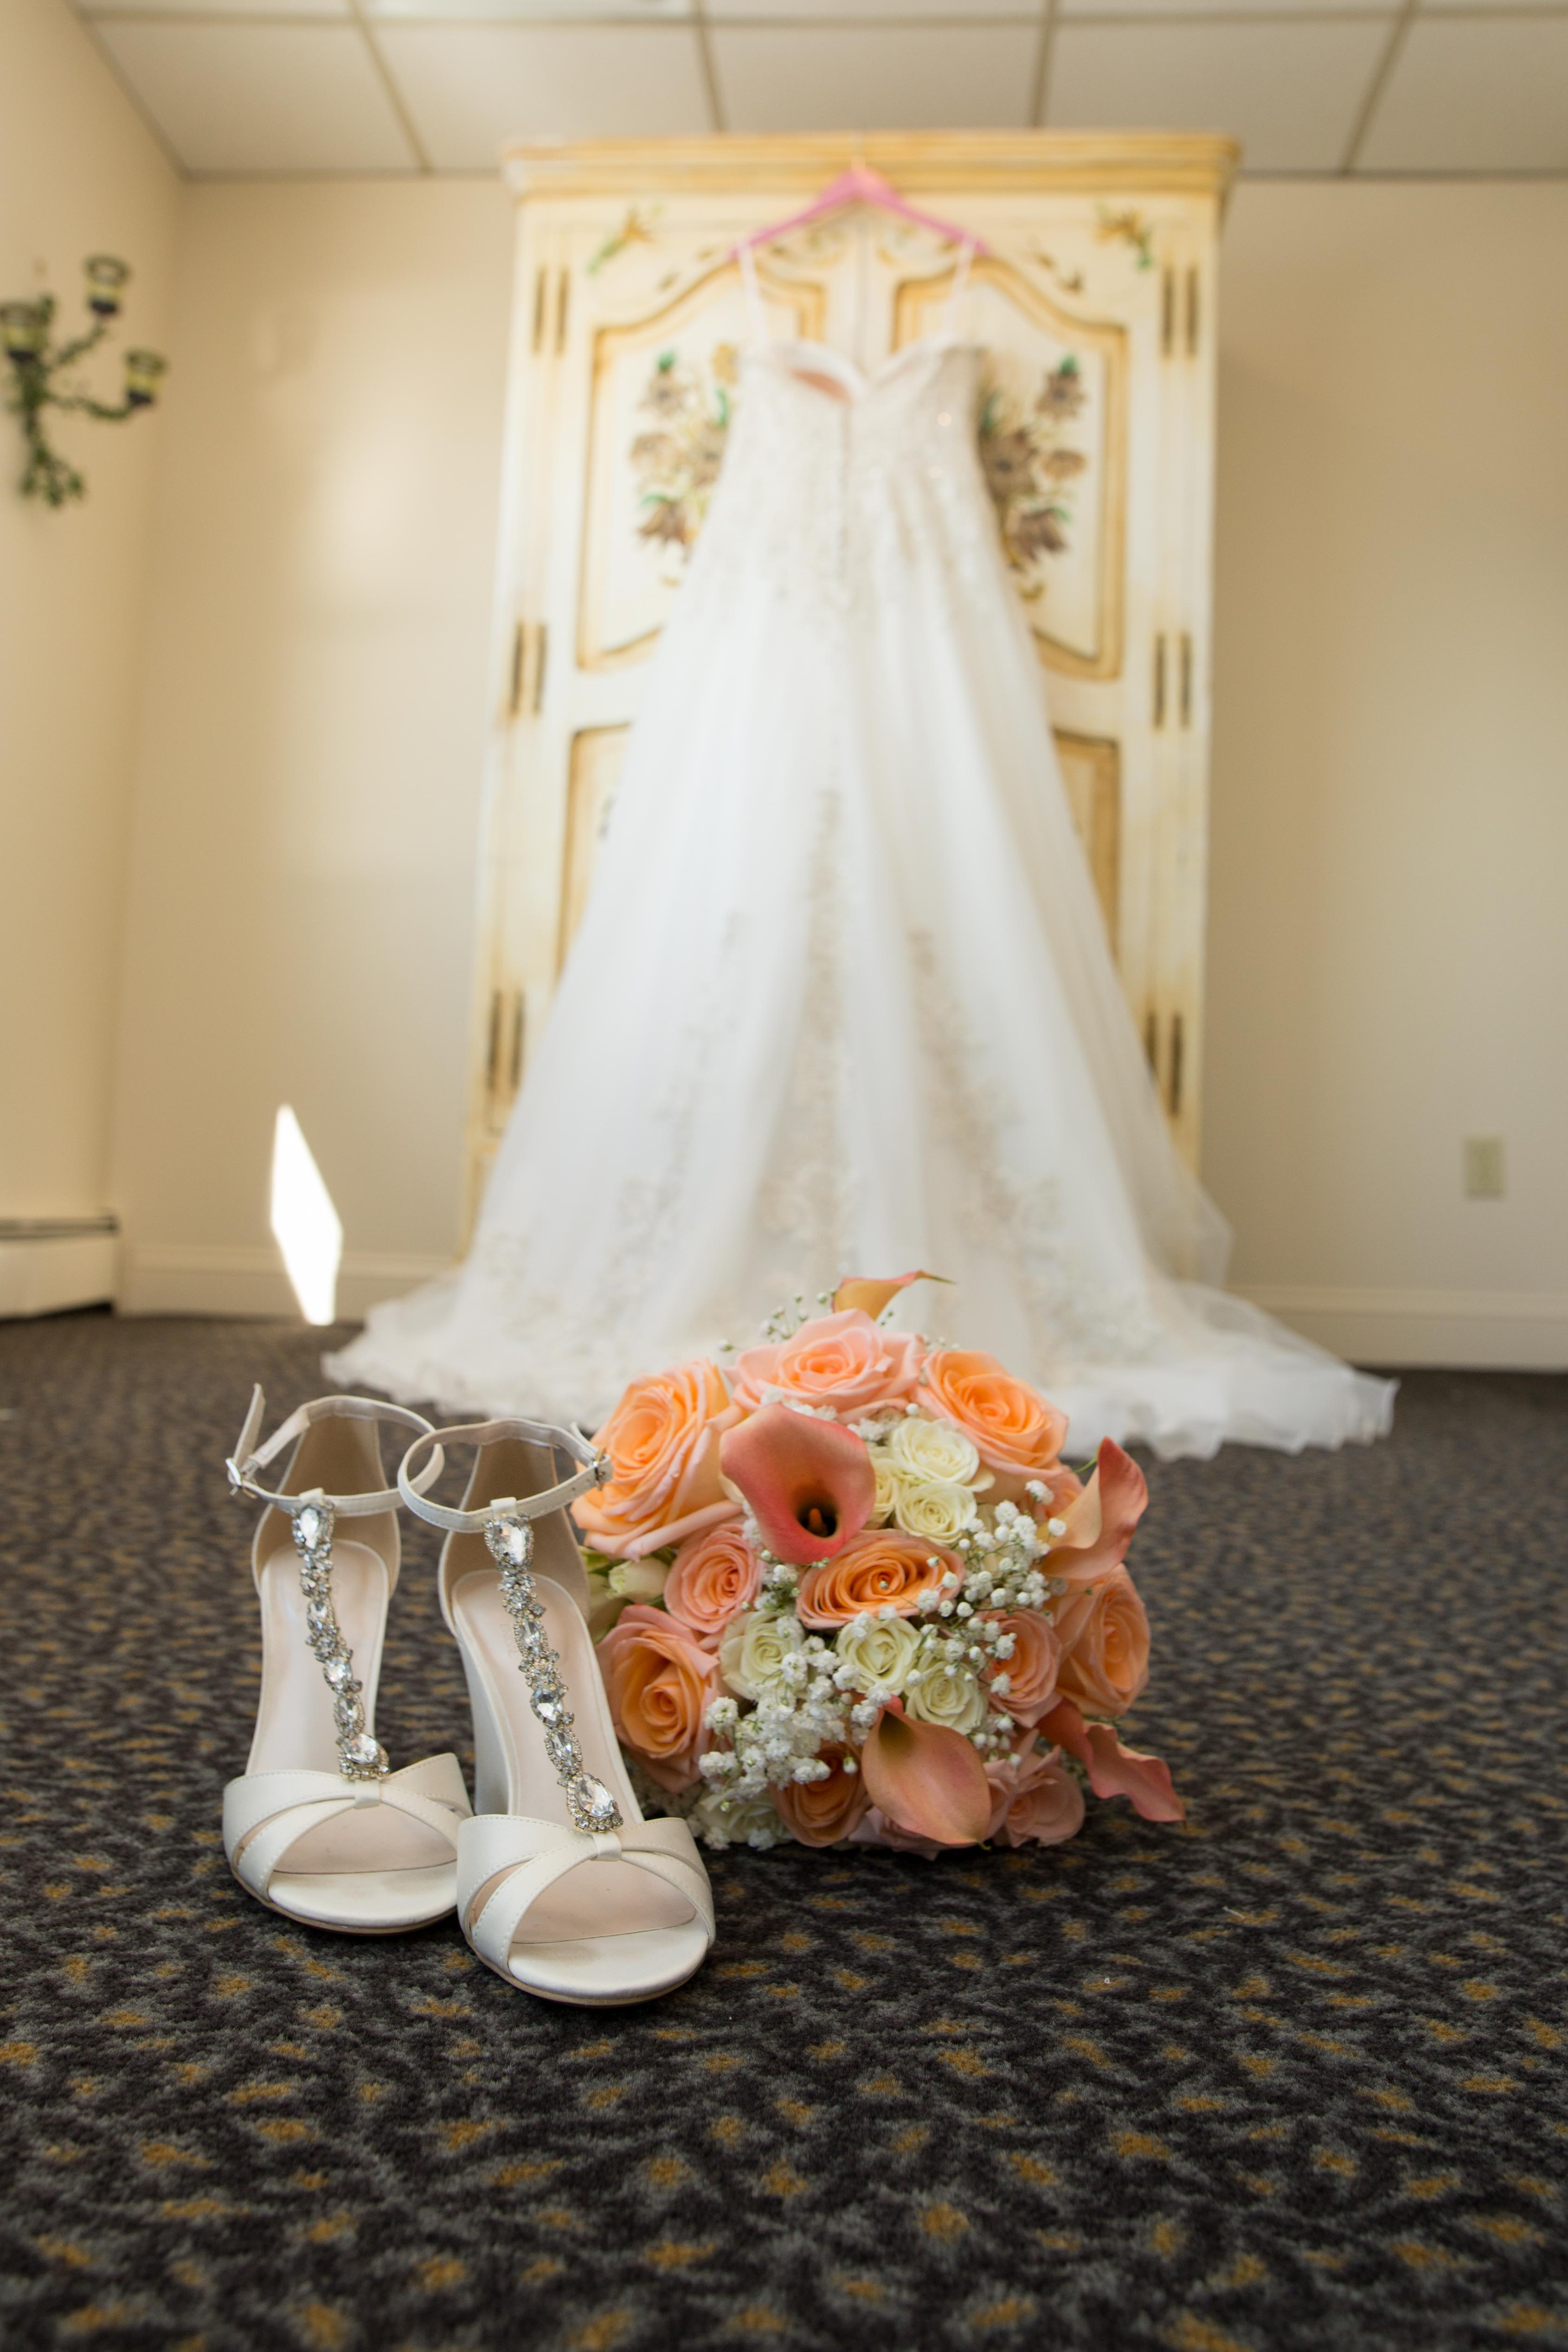 Wedding Dress with Shoes & Flowers - Amarante's Sea Cliff - CT Photo Group